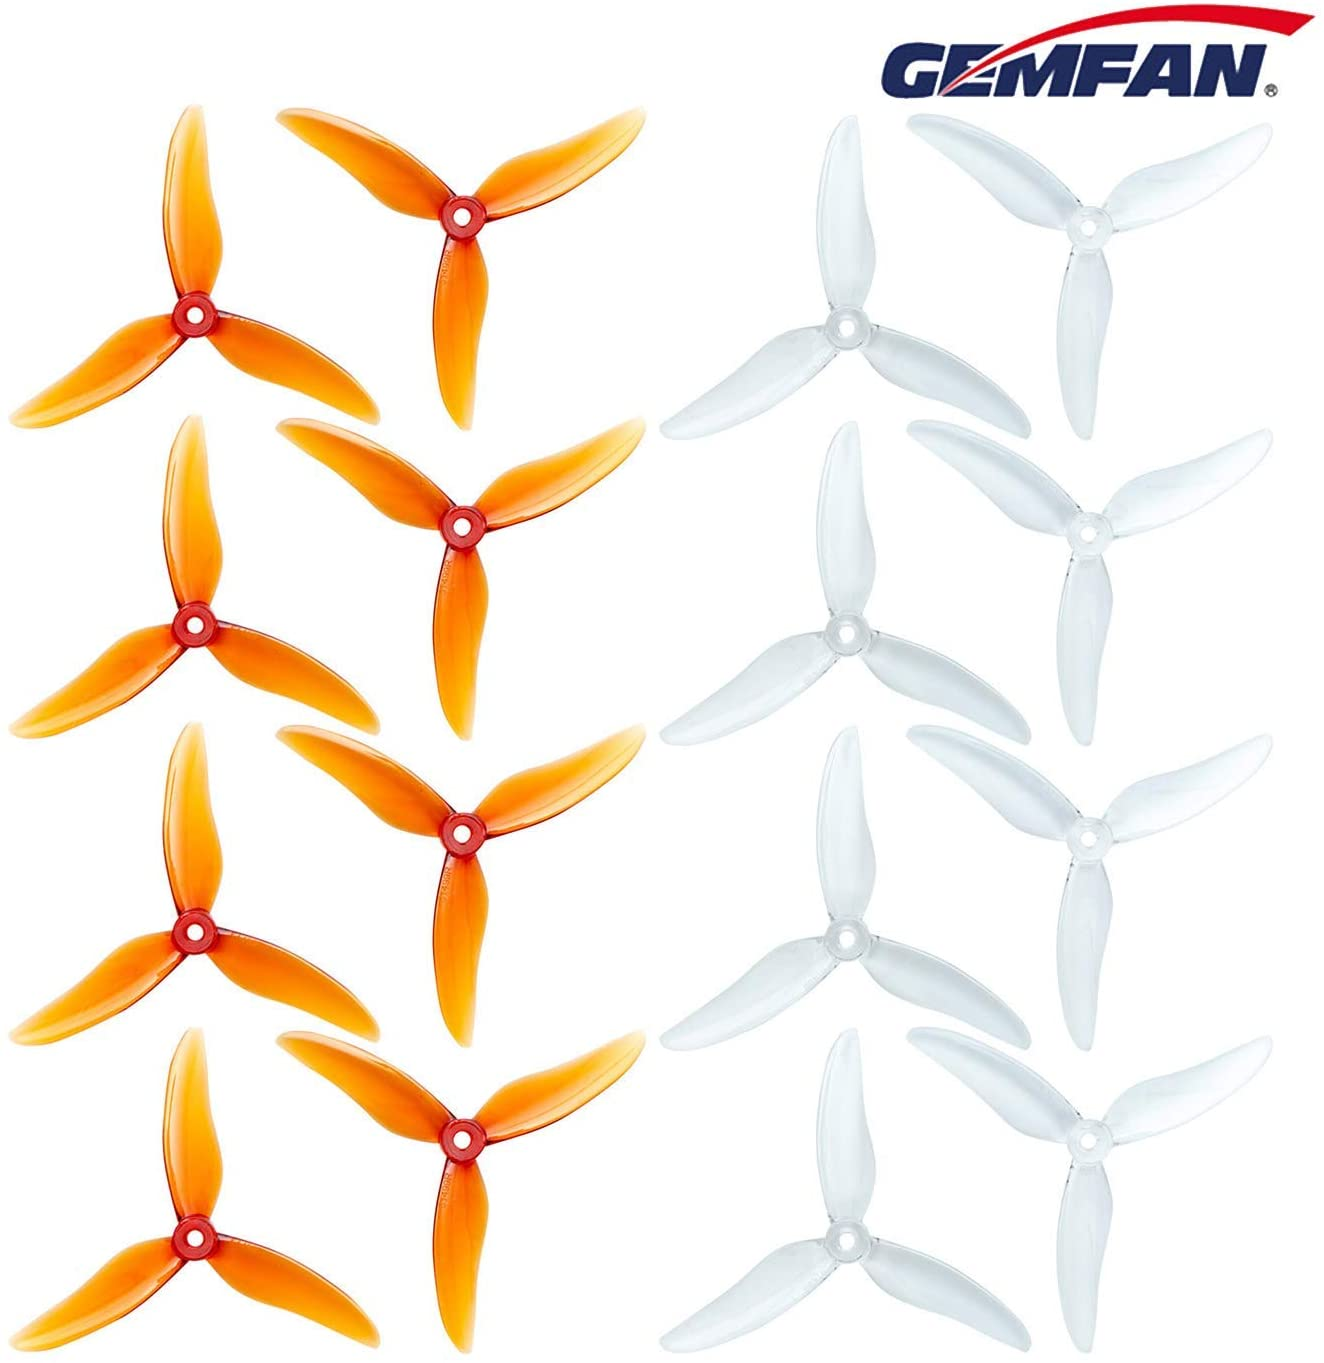 """16pcs GEMFAN Hurricane 51499 5 Inch Propeller 3-Blades Props CW CCW 5"""" Tri-Blade Propeller Best Match for 210 220 250 FPV Racing Drone Quadcopter Frame Kit (Clear Whisky + Clear)"""